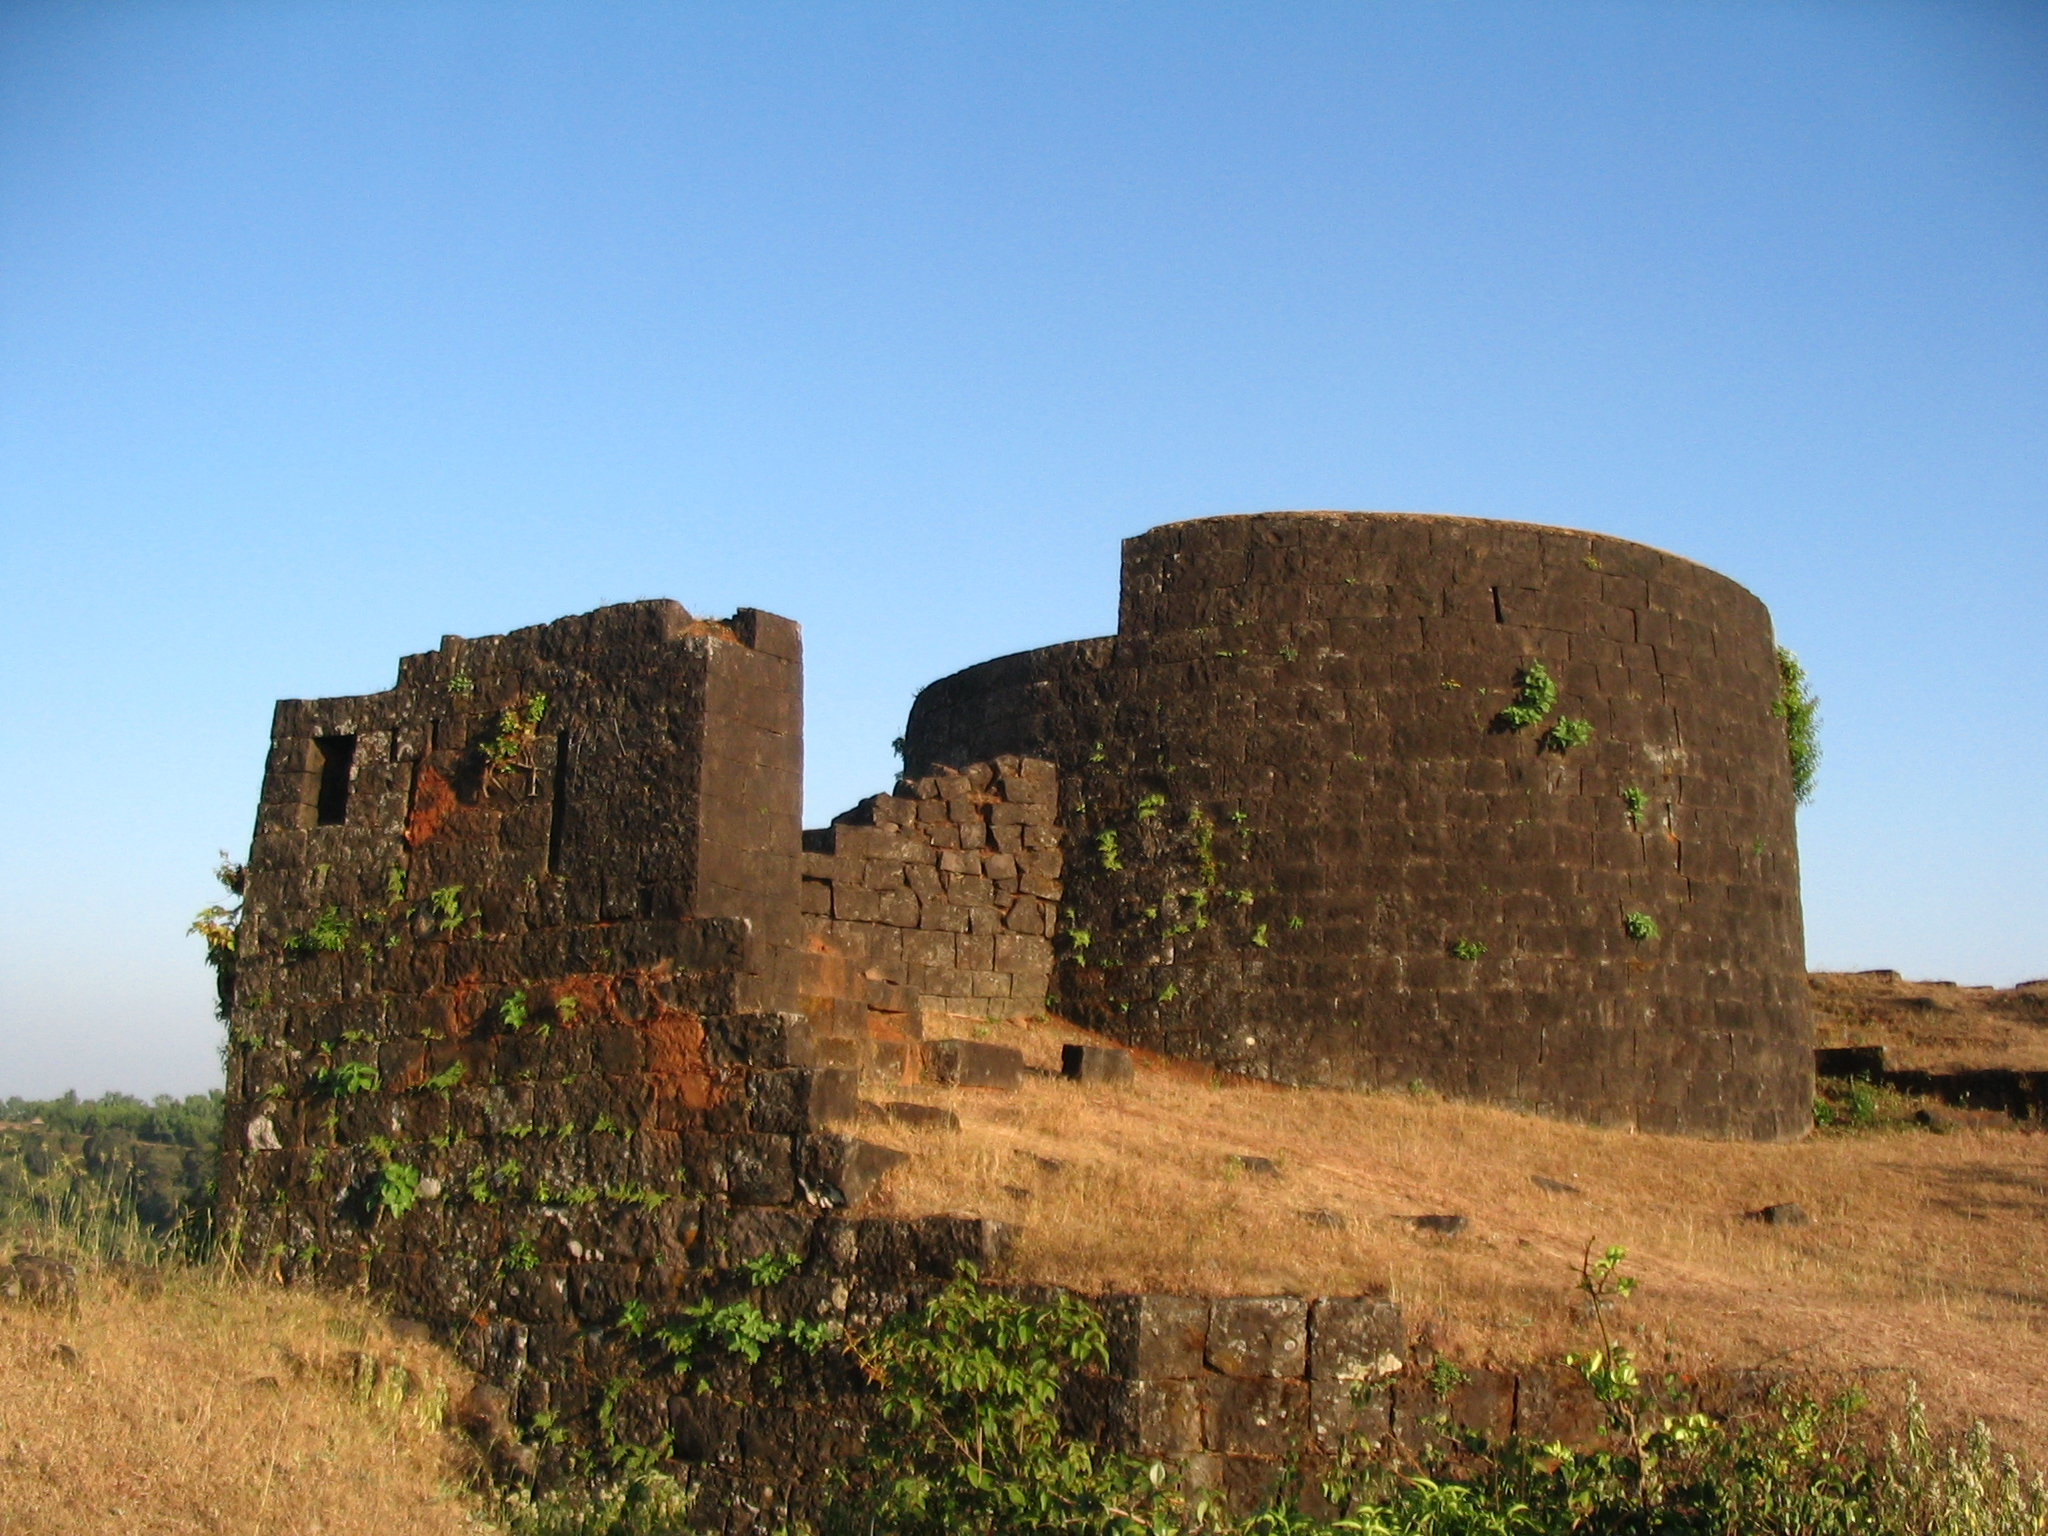 File:Remotest Rampart on Panhala.jpg - Wikimedia Commons